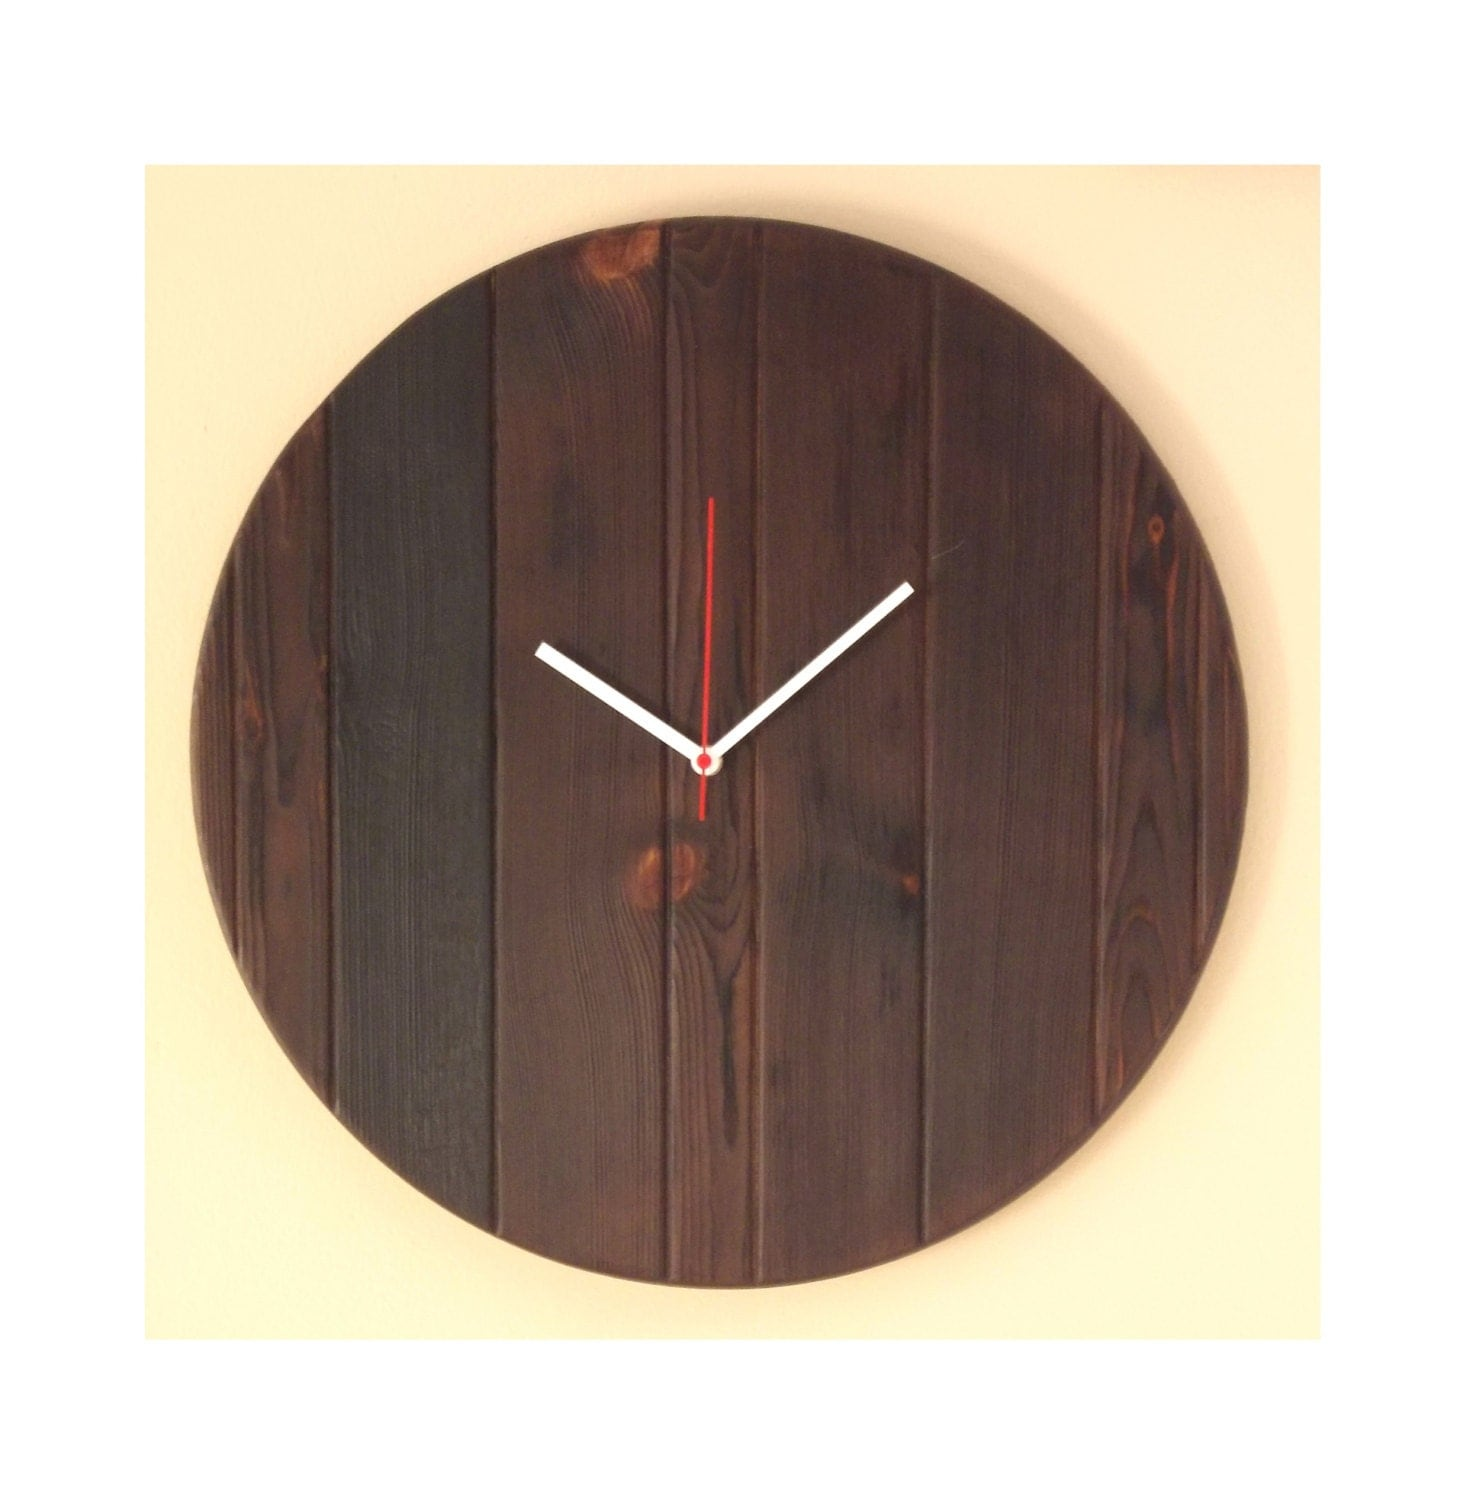 Clocks Wall Clock Large Wall Clock Unique Wall Clocks Wooden